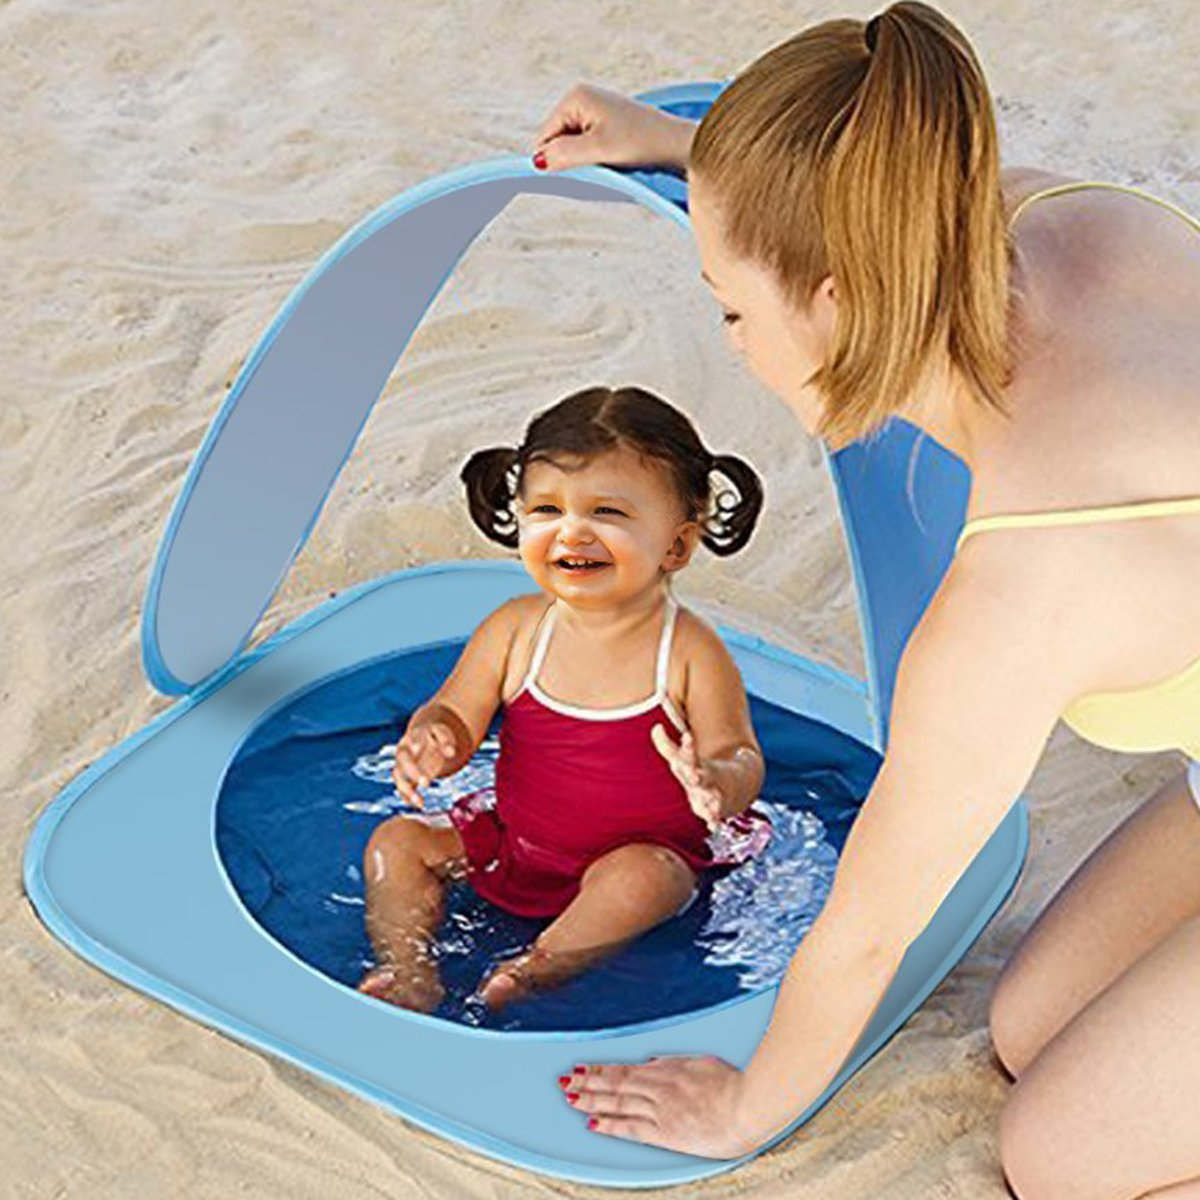 HAOCOO Baby Beach Tent, Pop Up Portable Baby Pool Tent 50 SPF UV Protection Sun Shelter Canopy with Carrying Bag Best Pool Toys Gifts for Infant